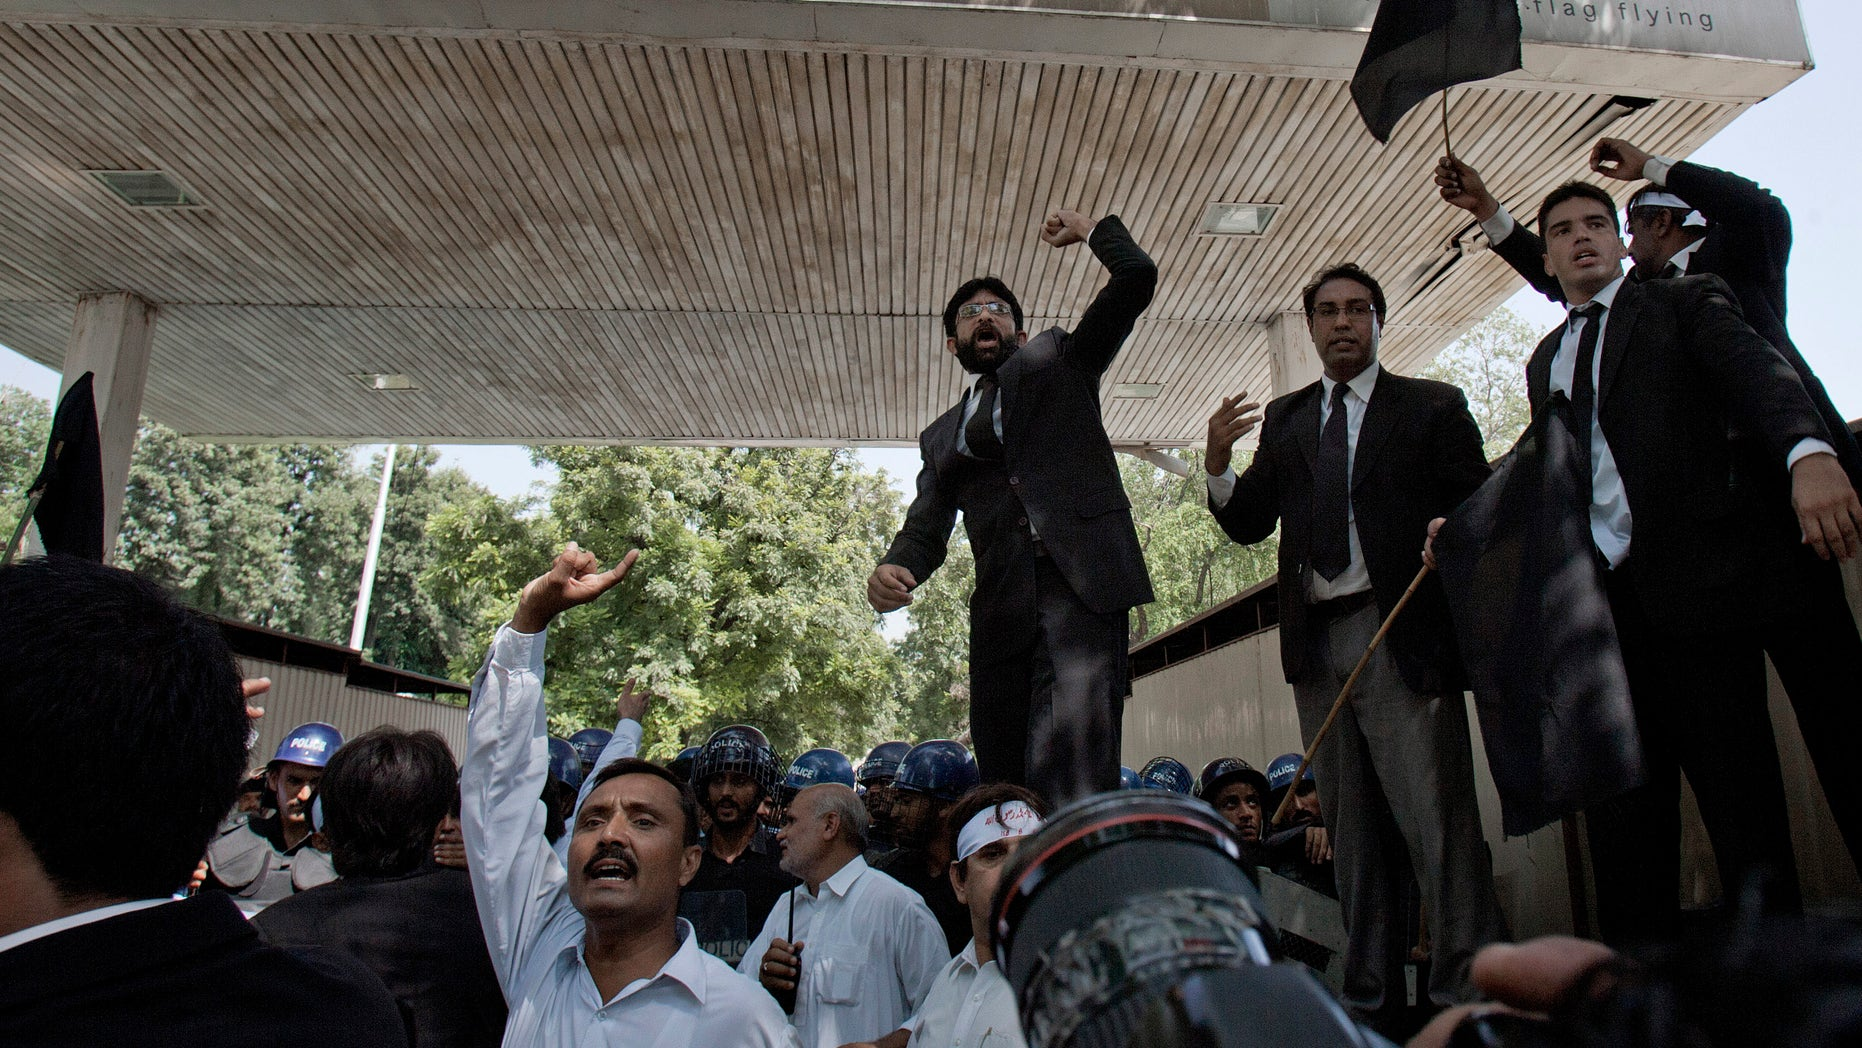 Pakistani lawyers chant anti-U.S. slogans during a demonstration, near an area that houses the U.S. Embassy and other foreign missions in Islamabad, Pakistan on Wednesday, Sept. 19, 2012. The demonstration in Islamabad followed three days of violent protests against an anti Islam film in Pakistan in which two people were killed. Over two dozen more have been killed in protests in other parts of the Muslim world over the past week, including the U.S. ambassador in Libya. (AP Photo/Anjum Naveed)